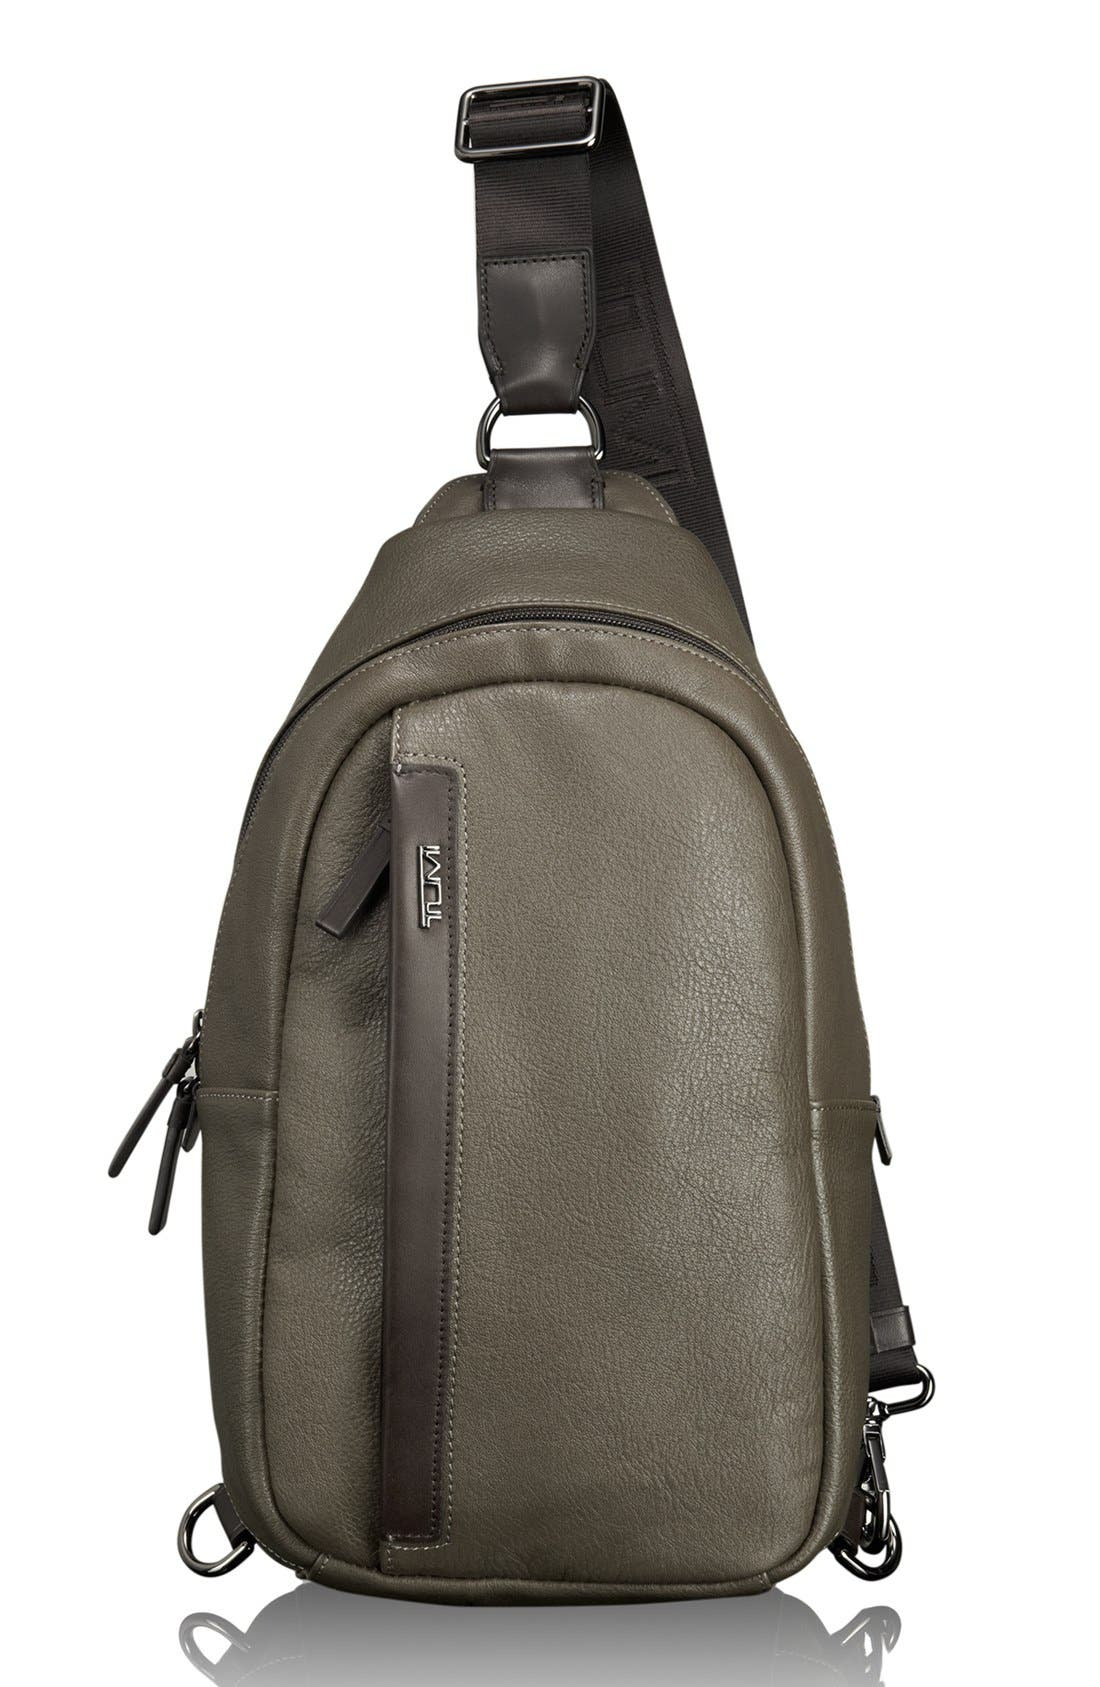 Main Image - Tumi 'Centro - Murano' Leather Sling Bag